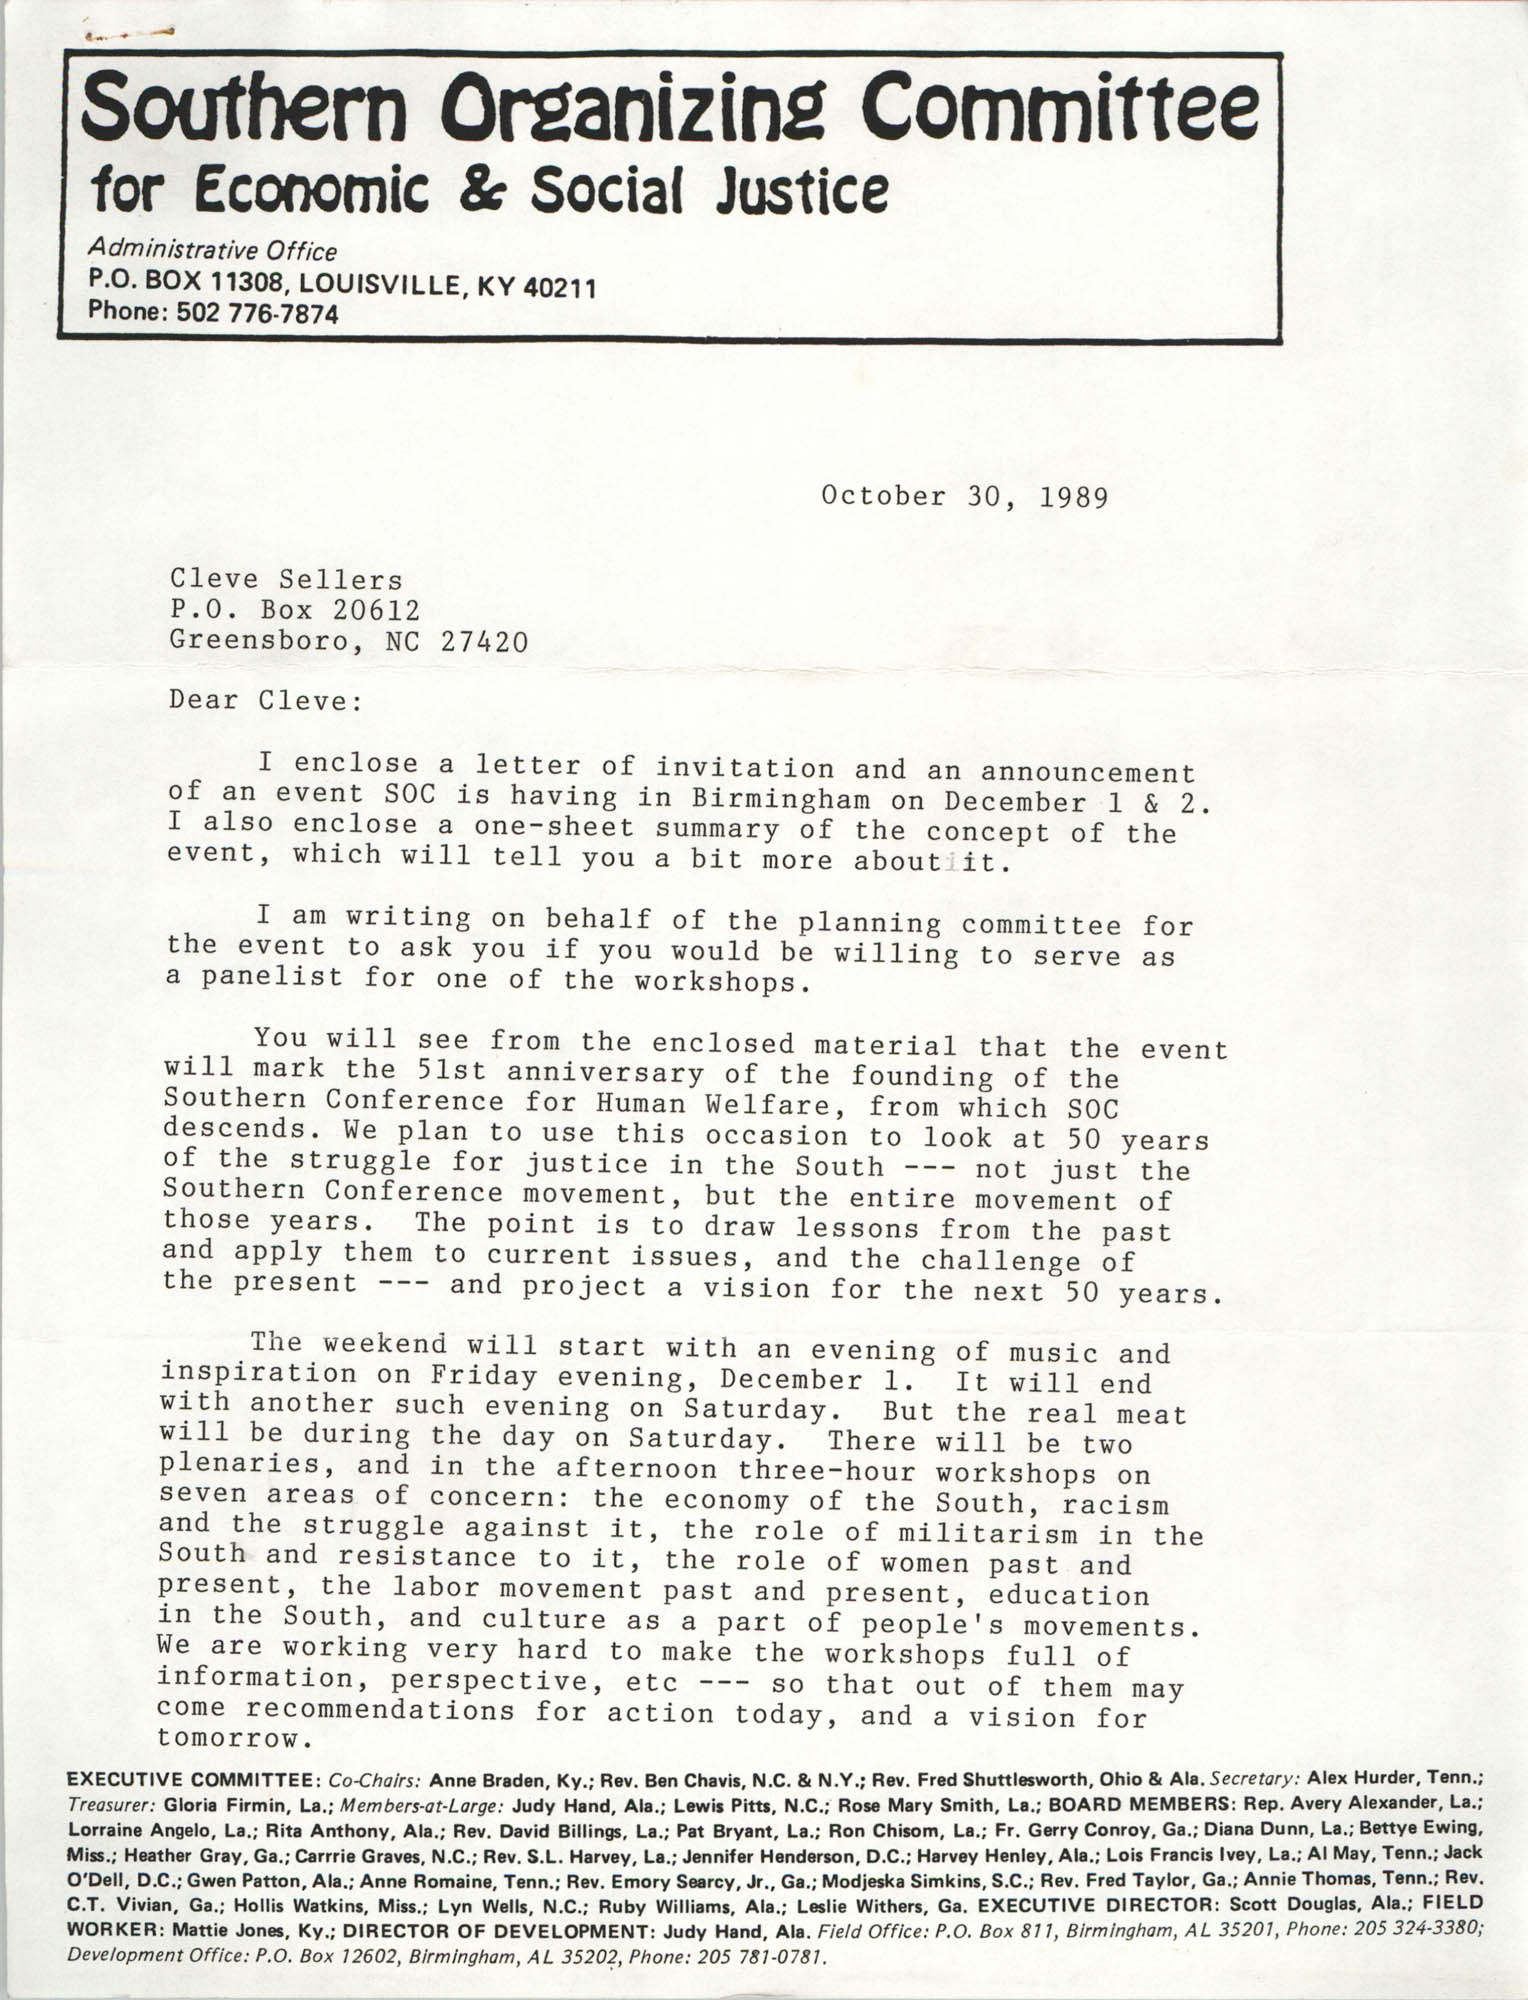 Letter from Anne Braden to Cleveland Sellers, October 30, 1989